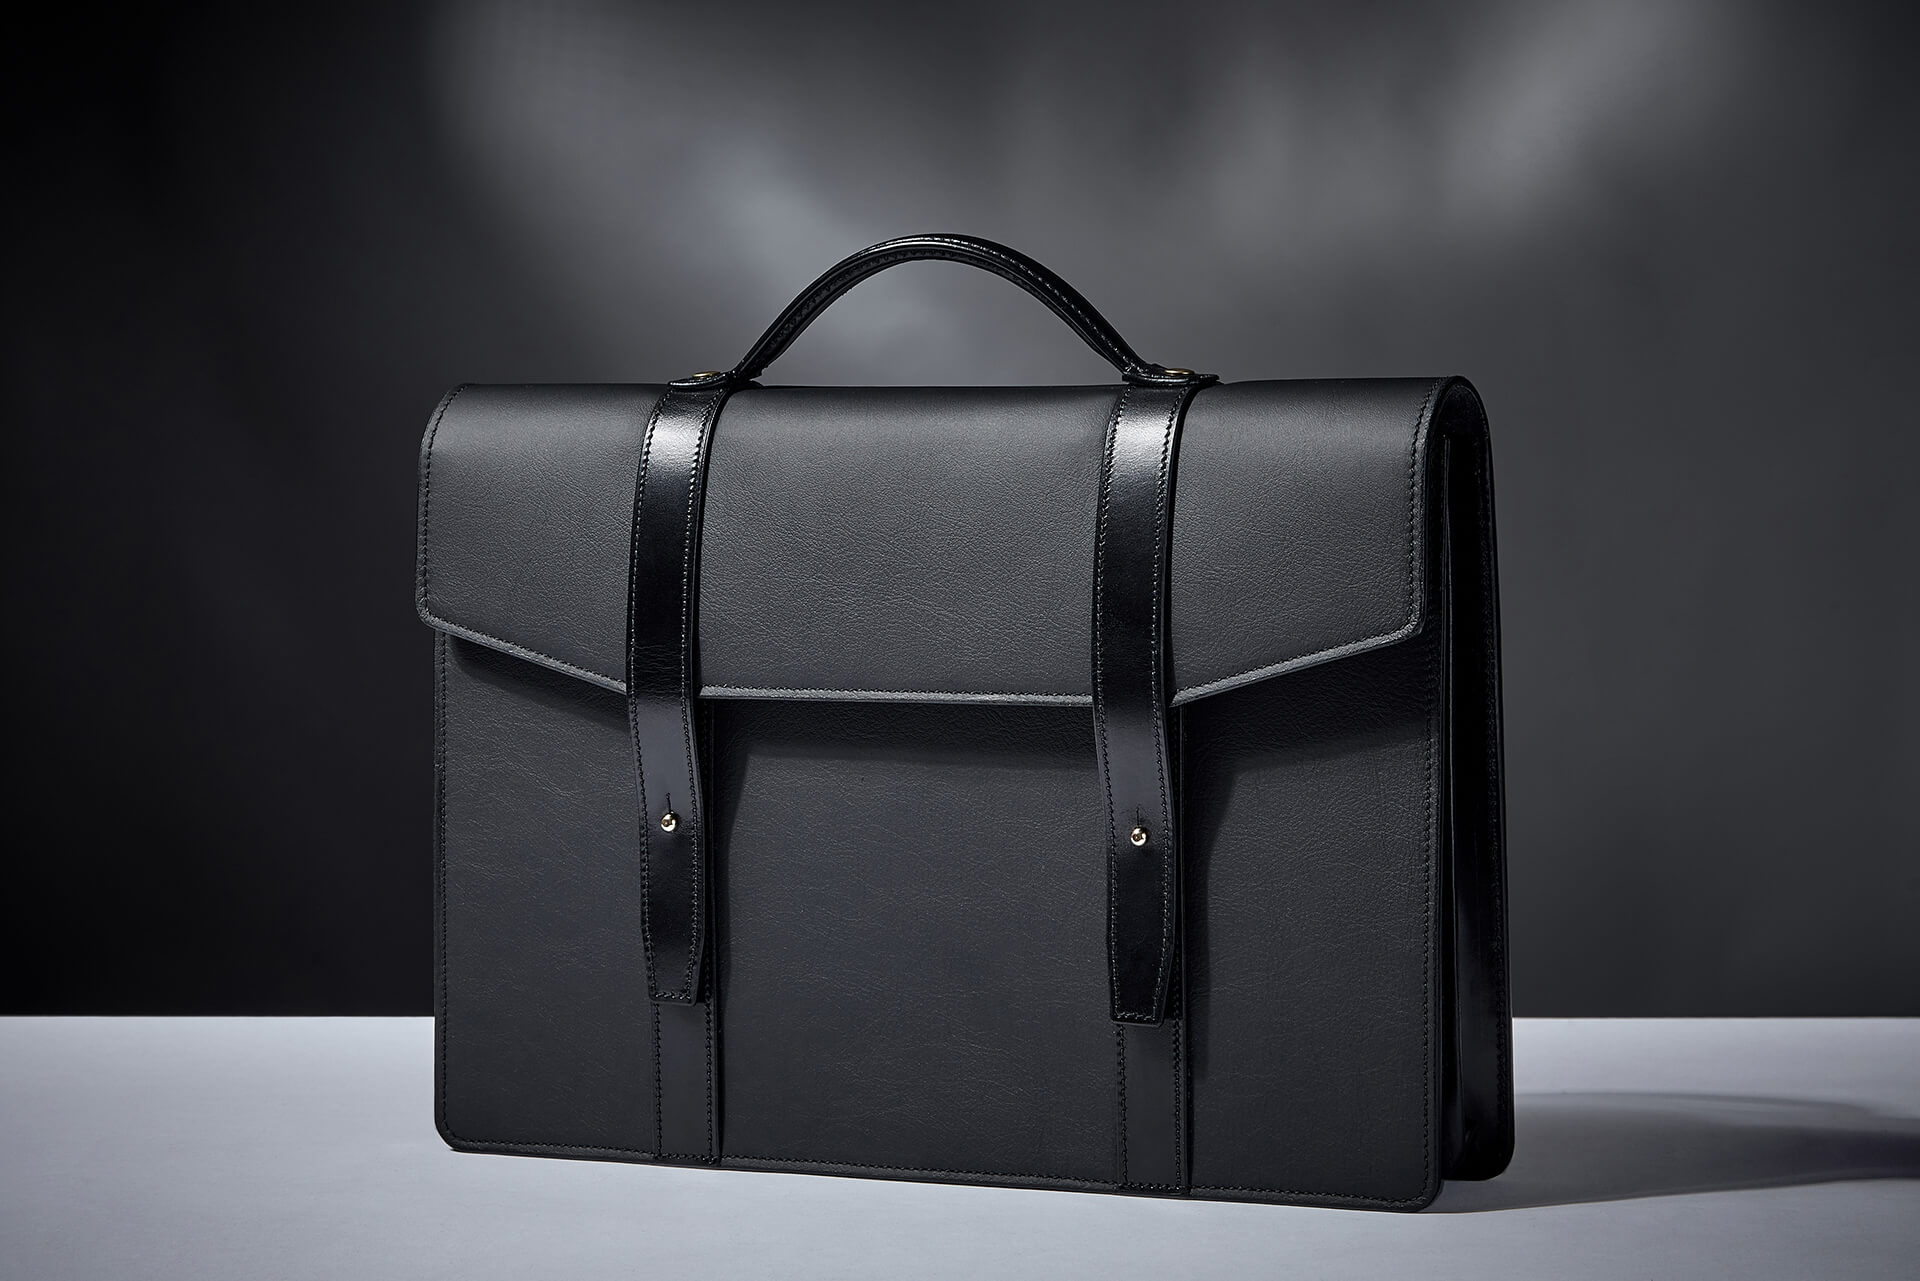 The Briefcase_Bag_Black_C.jpg 2